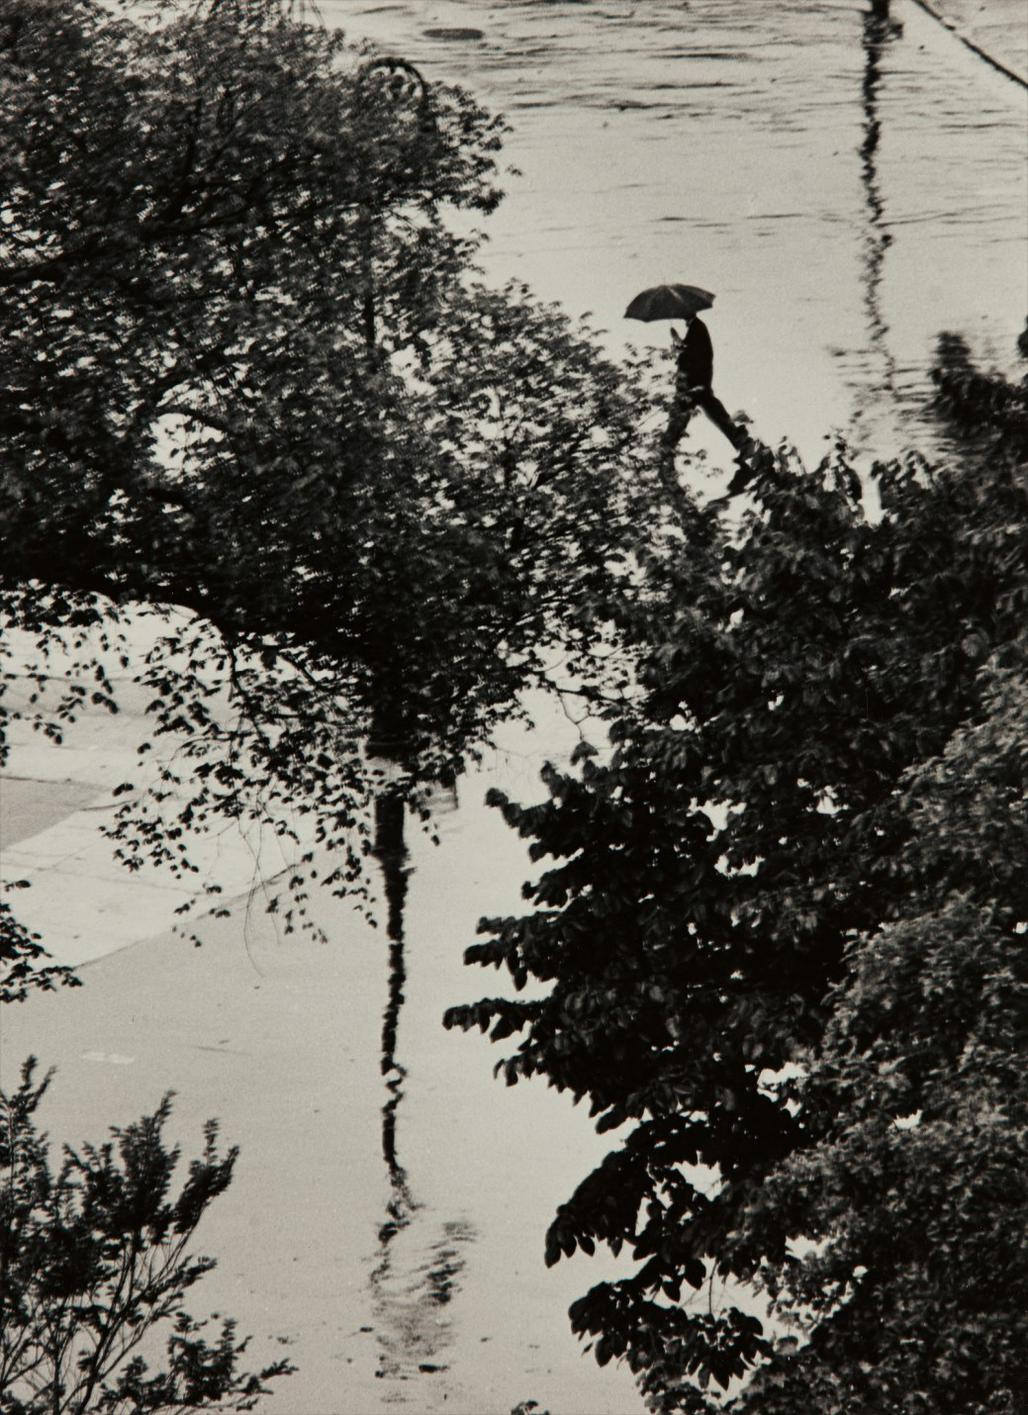 Andre Kertesz-Looking Through Trees At Man With Umbrella, August 2-1962